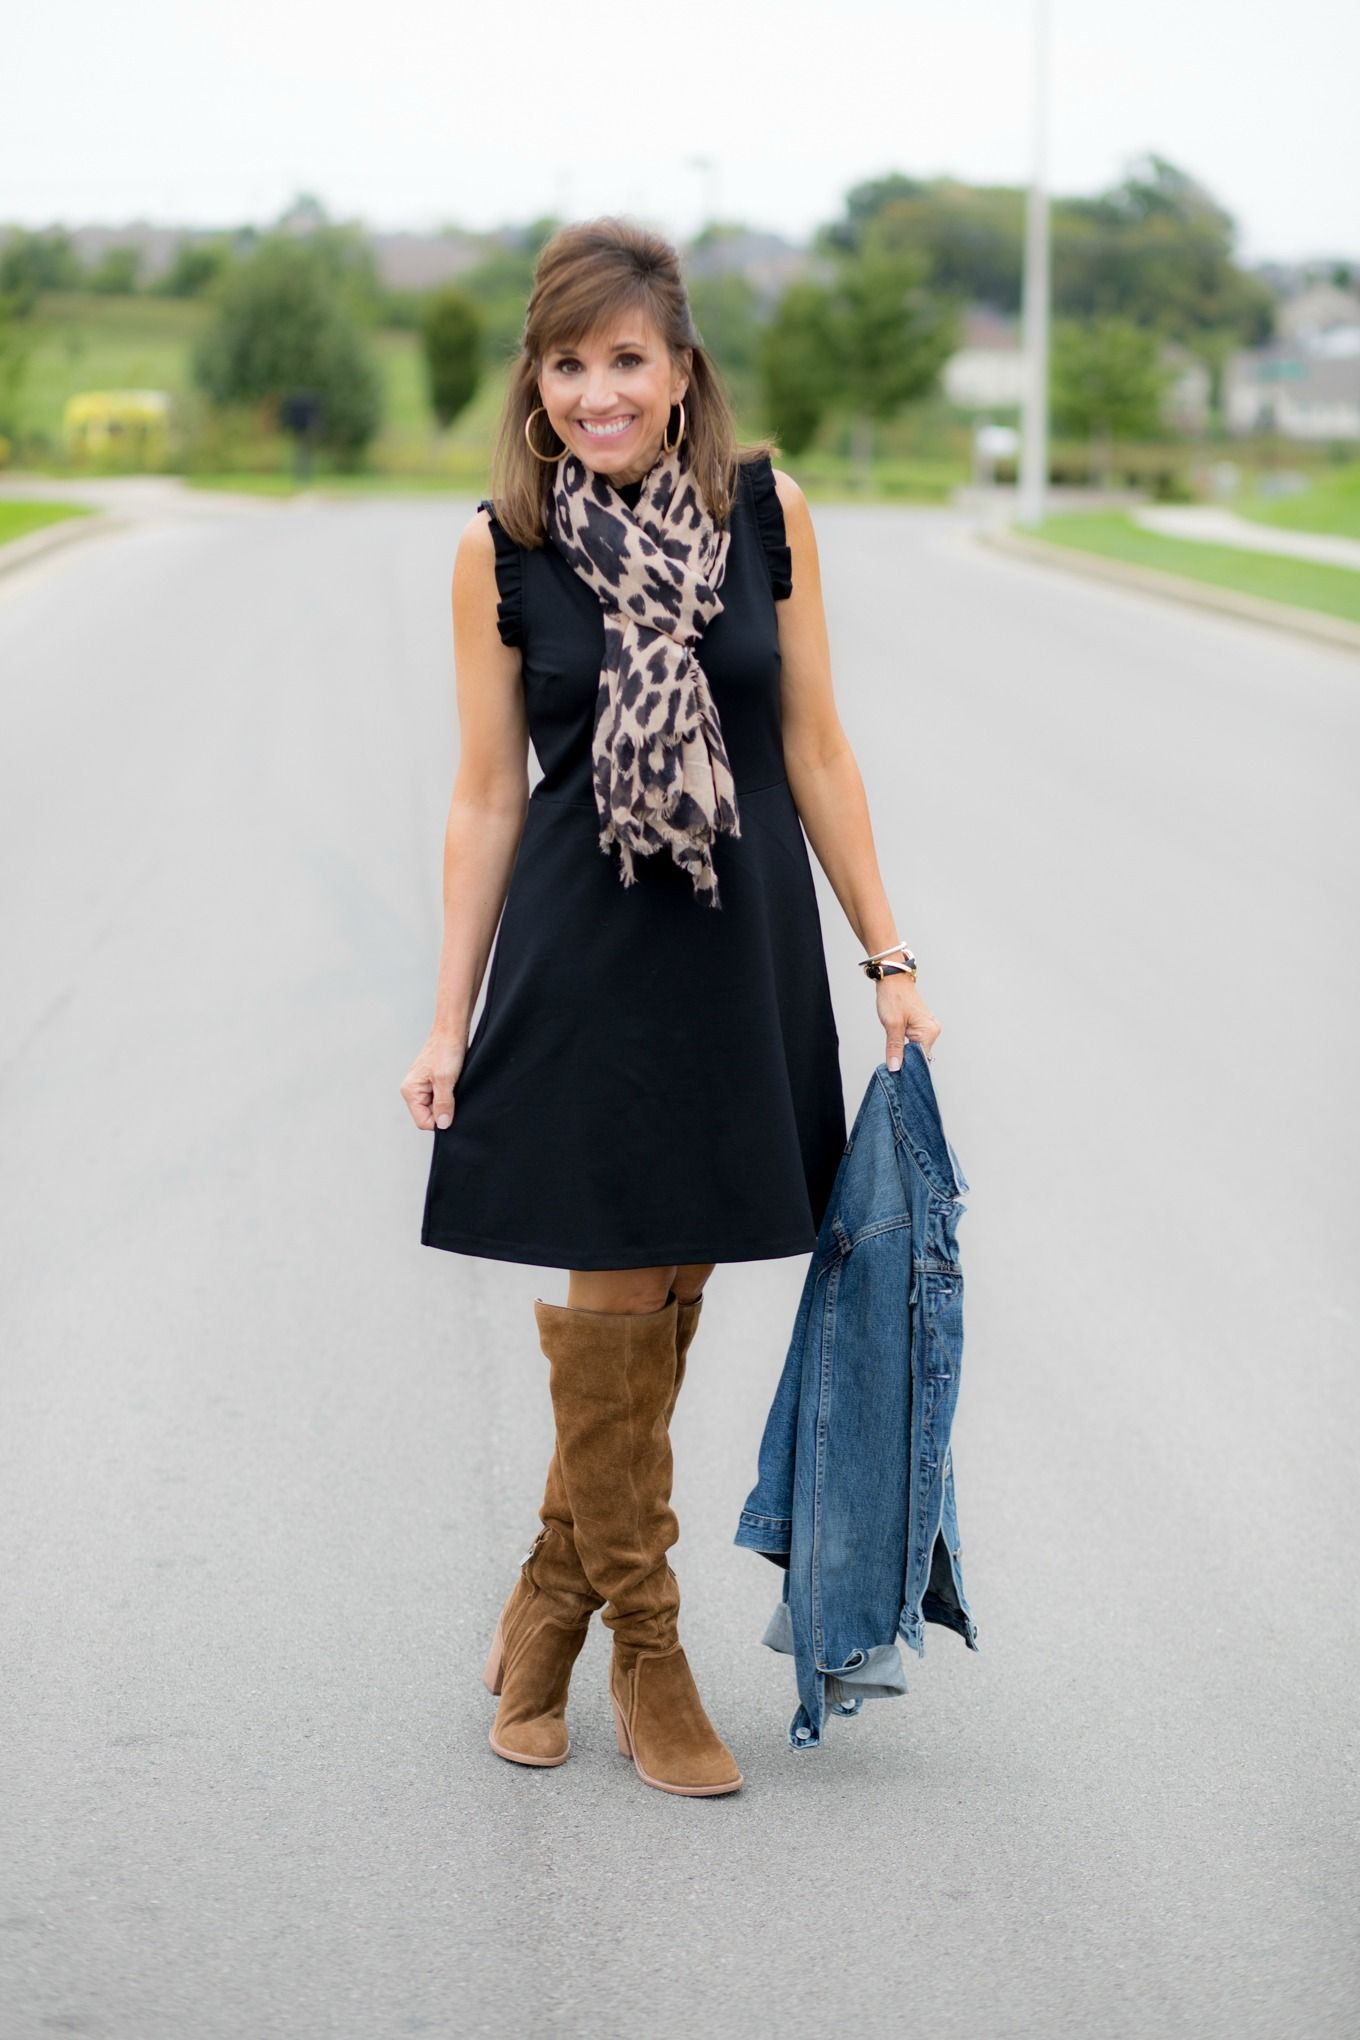 How To Style A Sleeveless Black Dress For Fall Cyndi Spivey Black Swing Dress Outfit Swing Dresses Outfit Fashion [ 2040 x 1360 Pixel ]